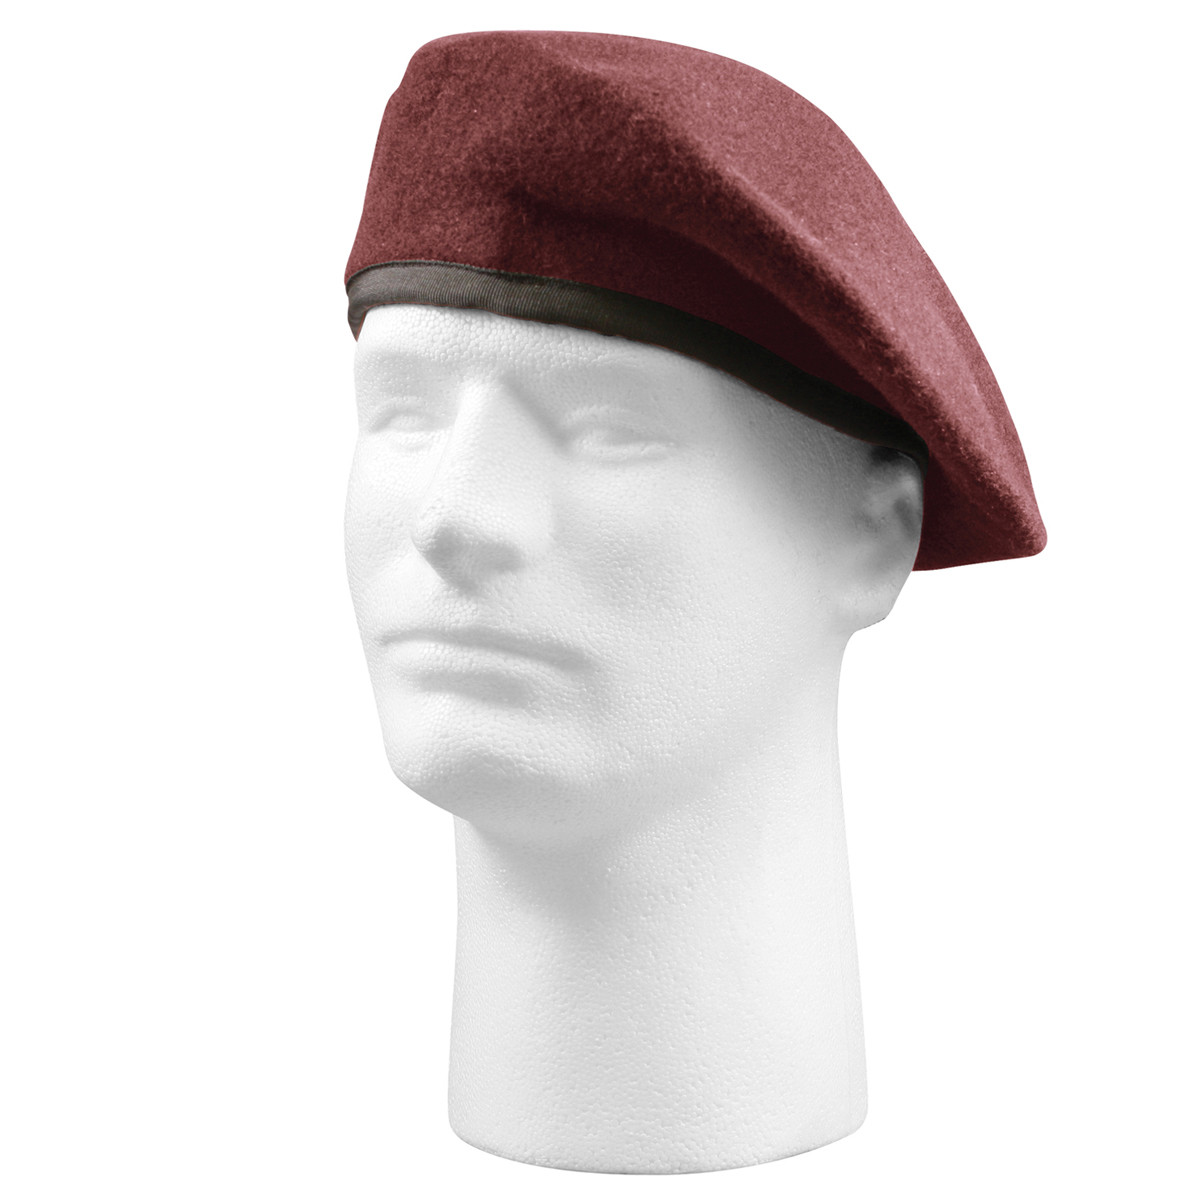 595500c33ca4b Shop Inspection Ready Maroon Berets - Fatigues Army Navy Gear